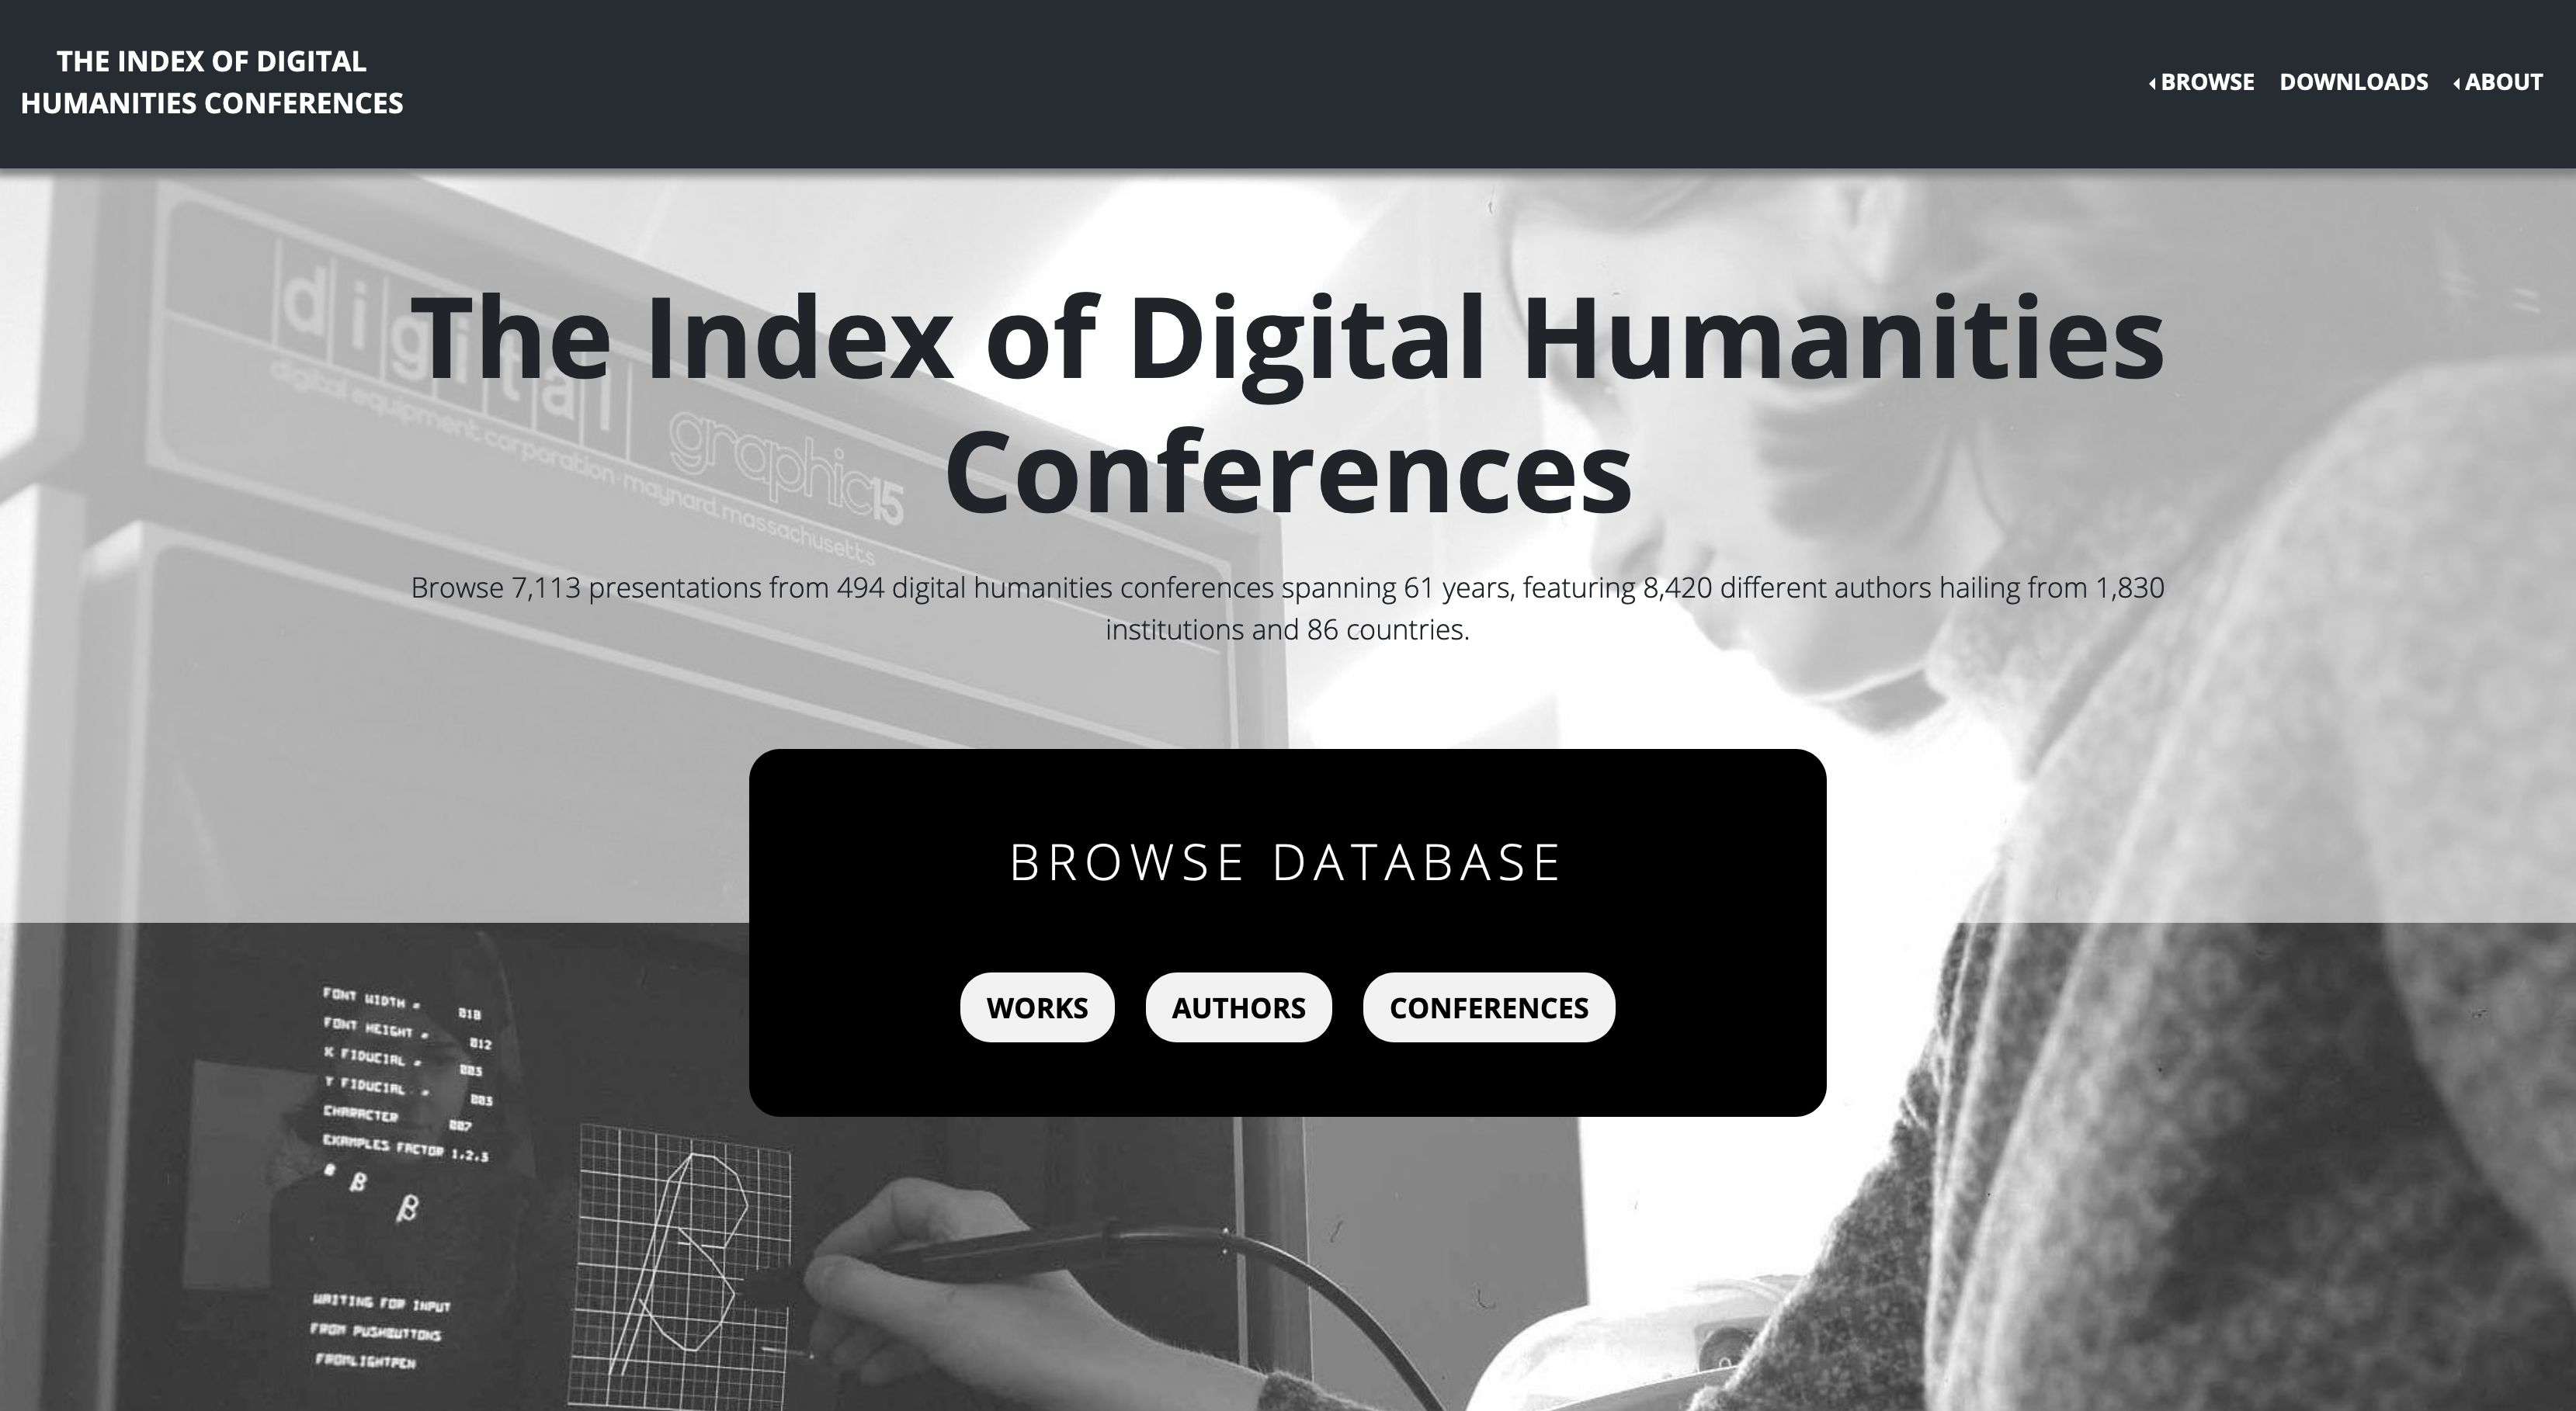 The homepage of The Index of Digital Humanities Conferences